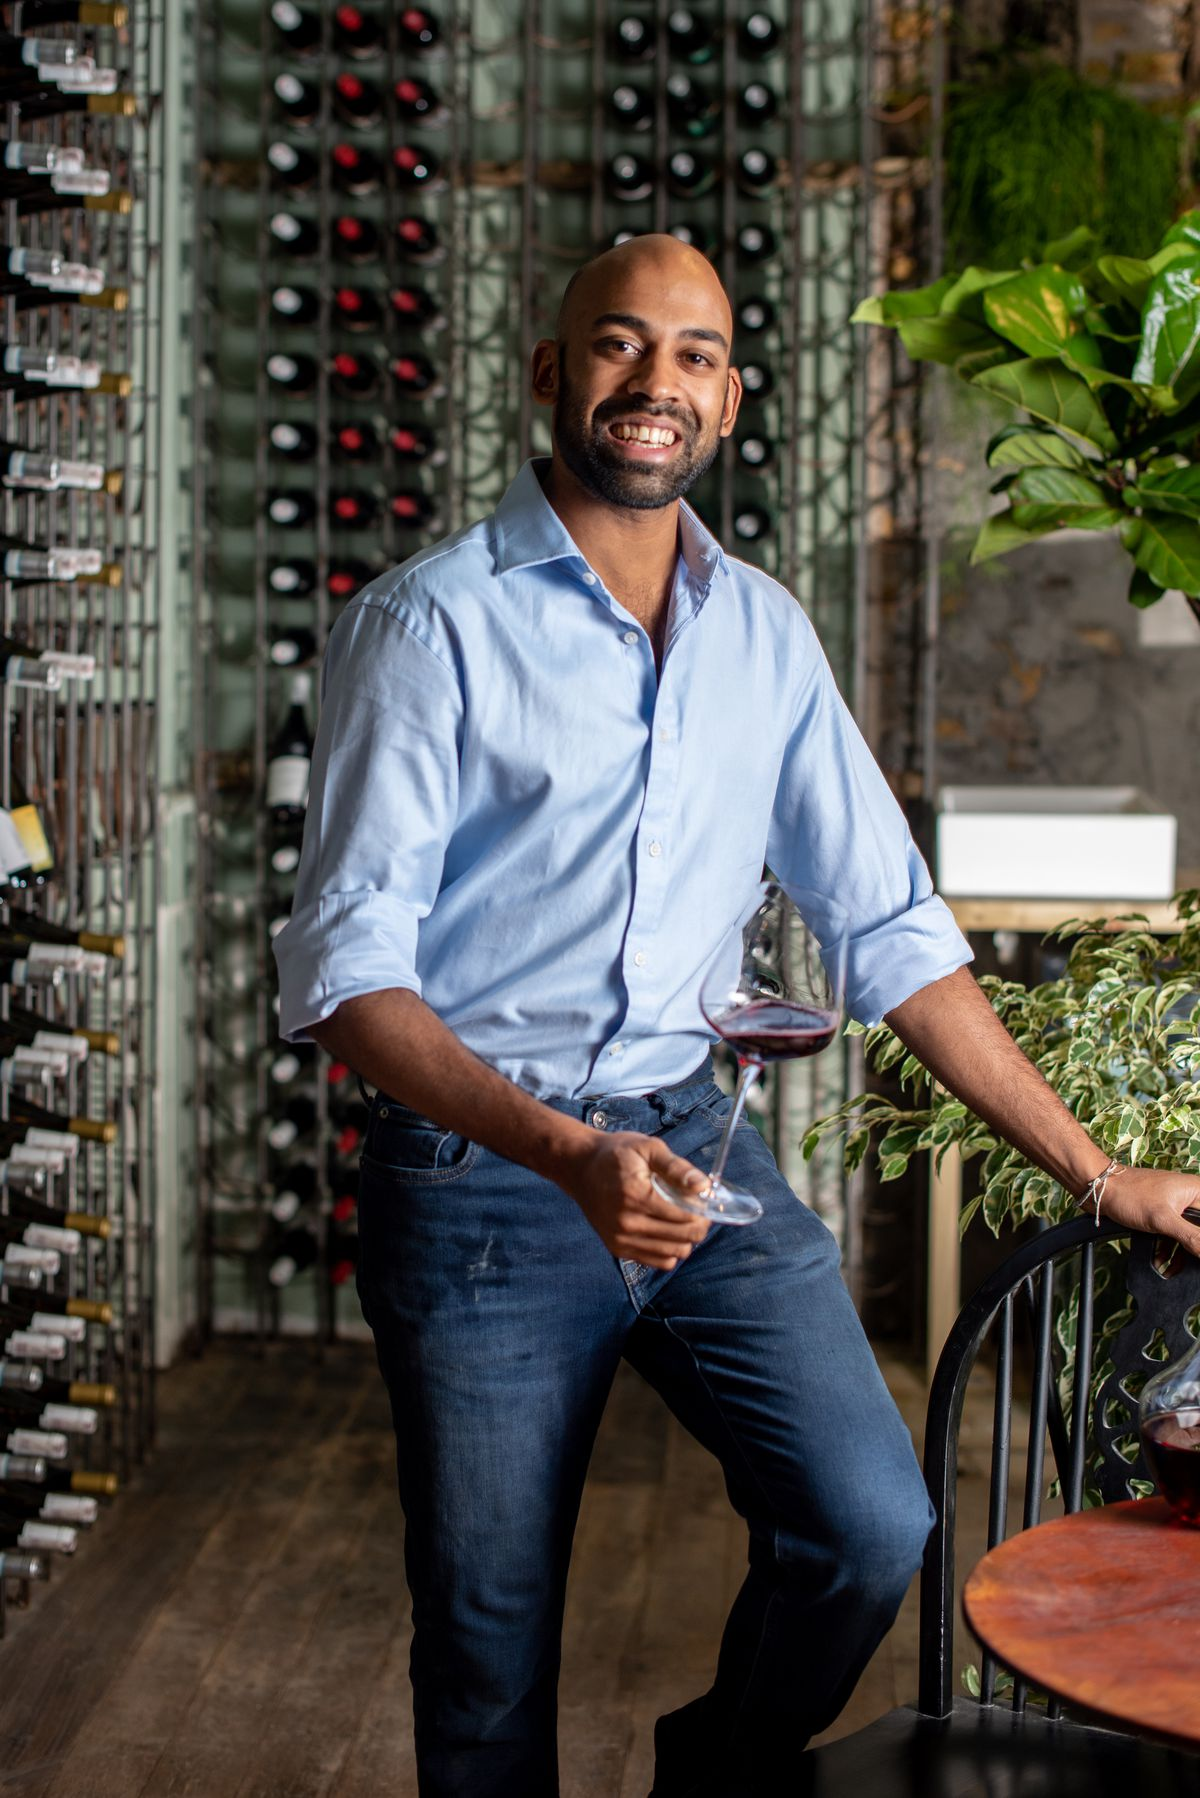 Owner Sunny Hodge at Diogenes the Dog, a new wine bar for London in Elephant and Castle